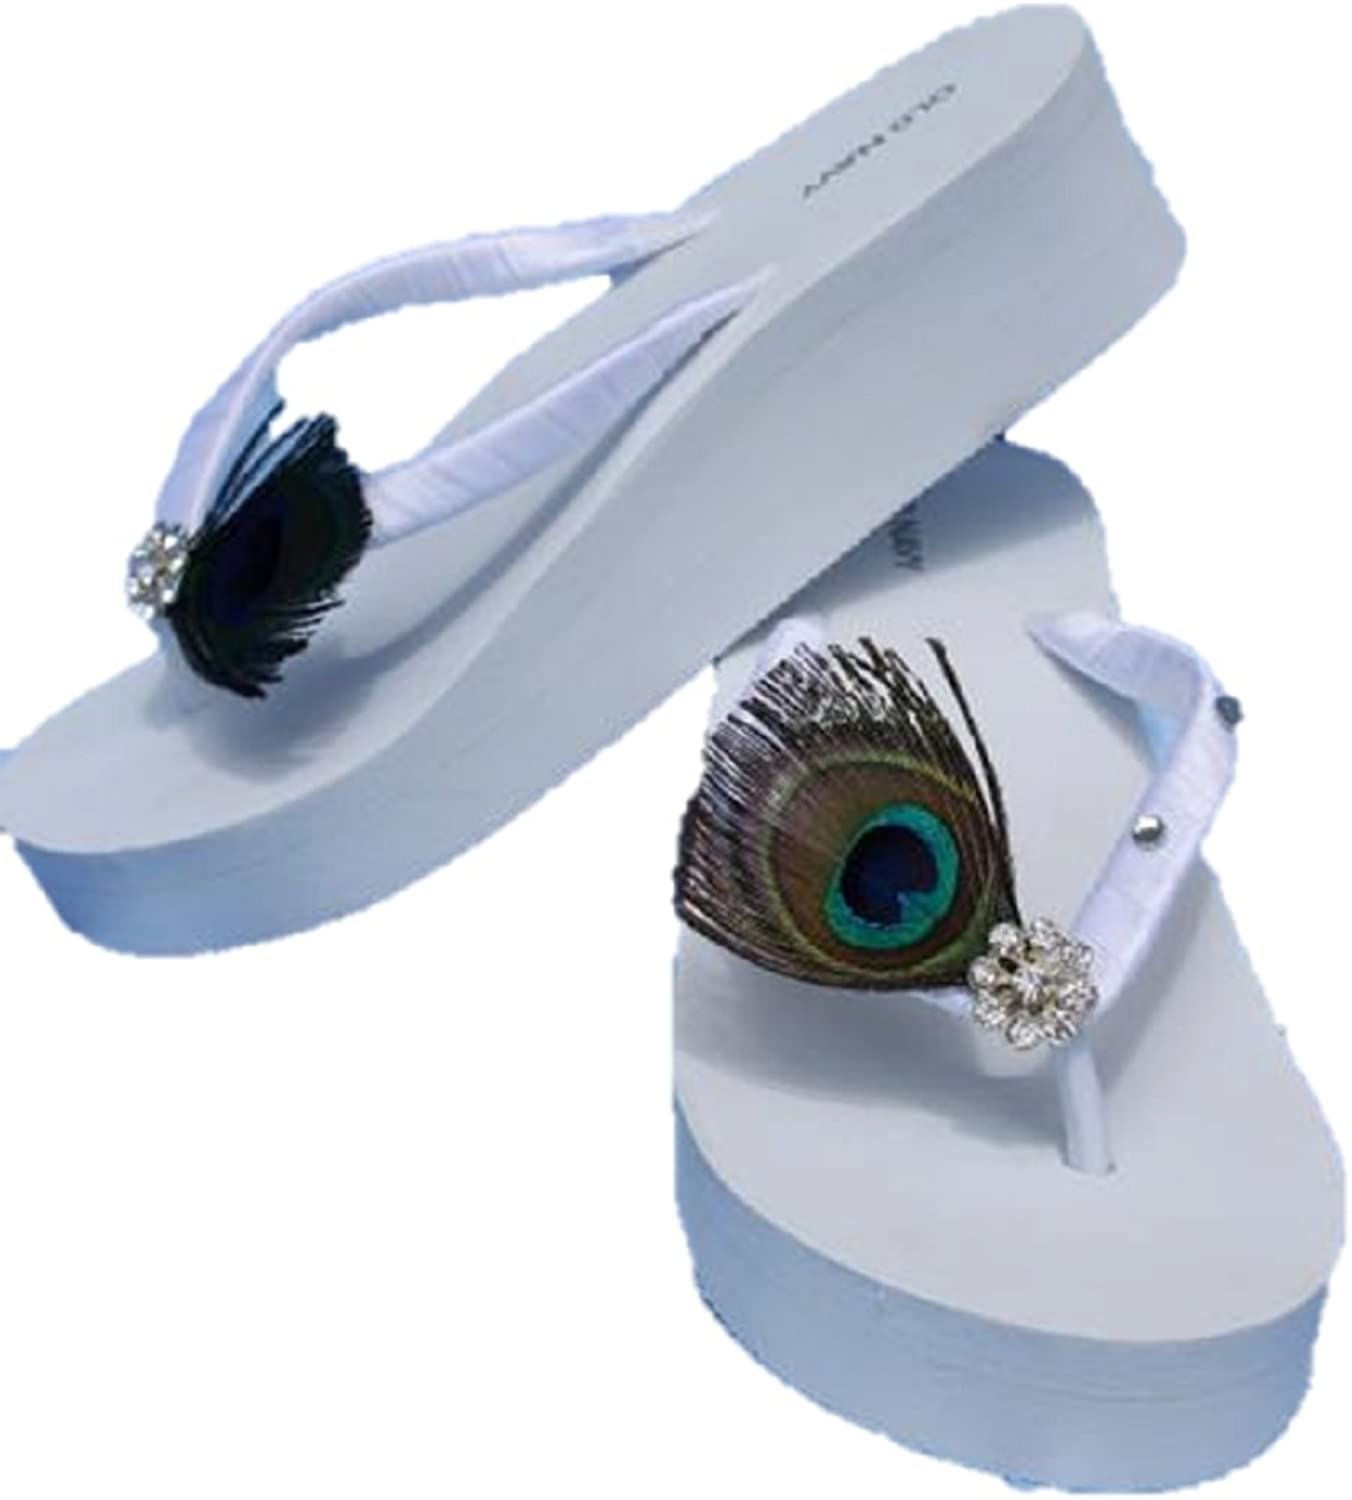 A Bidda Bling White Wedge Bridal Flip Flop Sandals with Peacock Feathers and Crystals